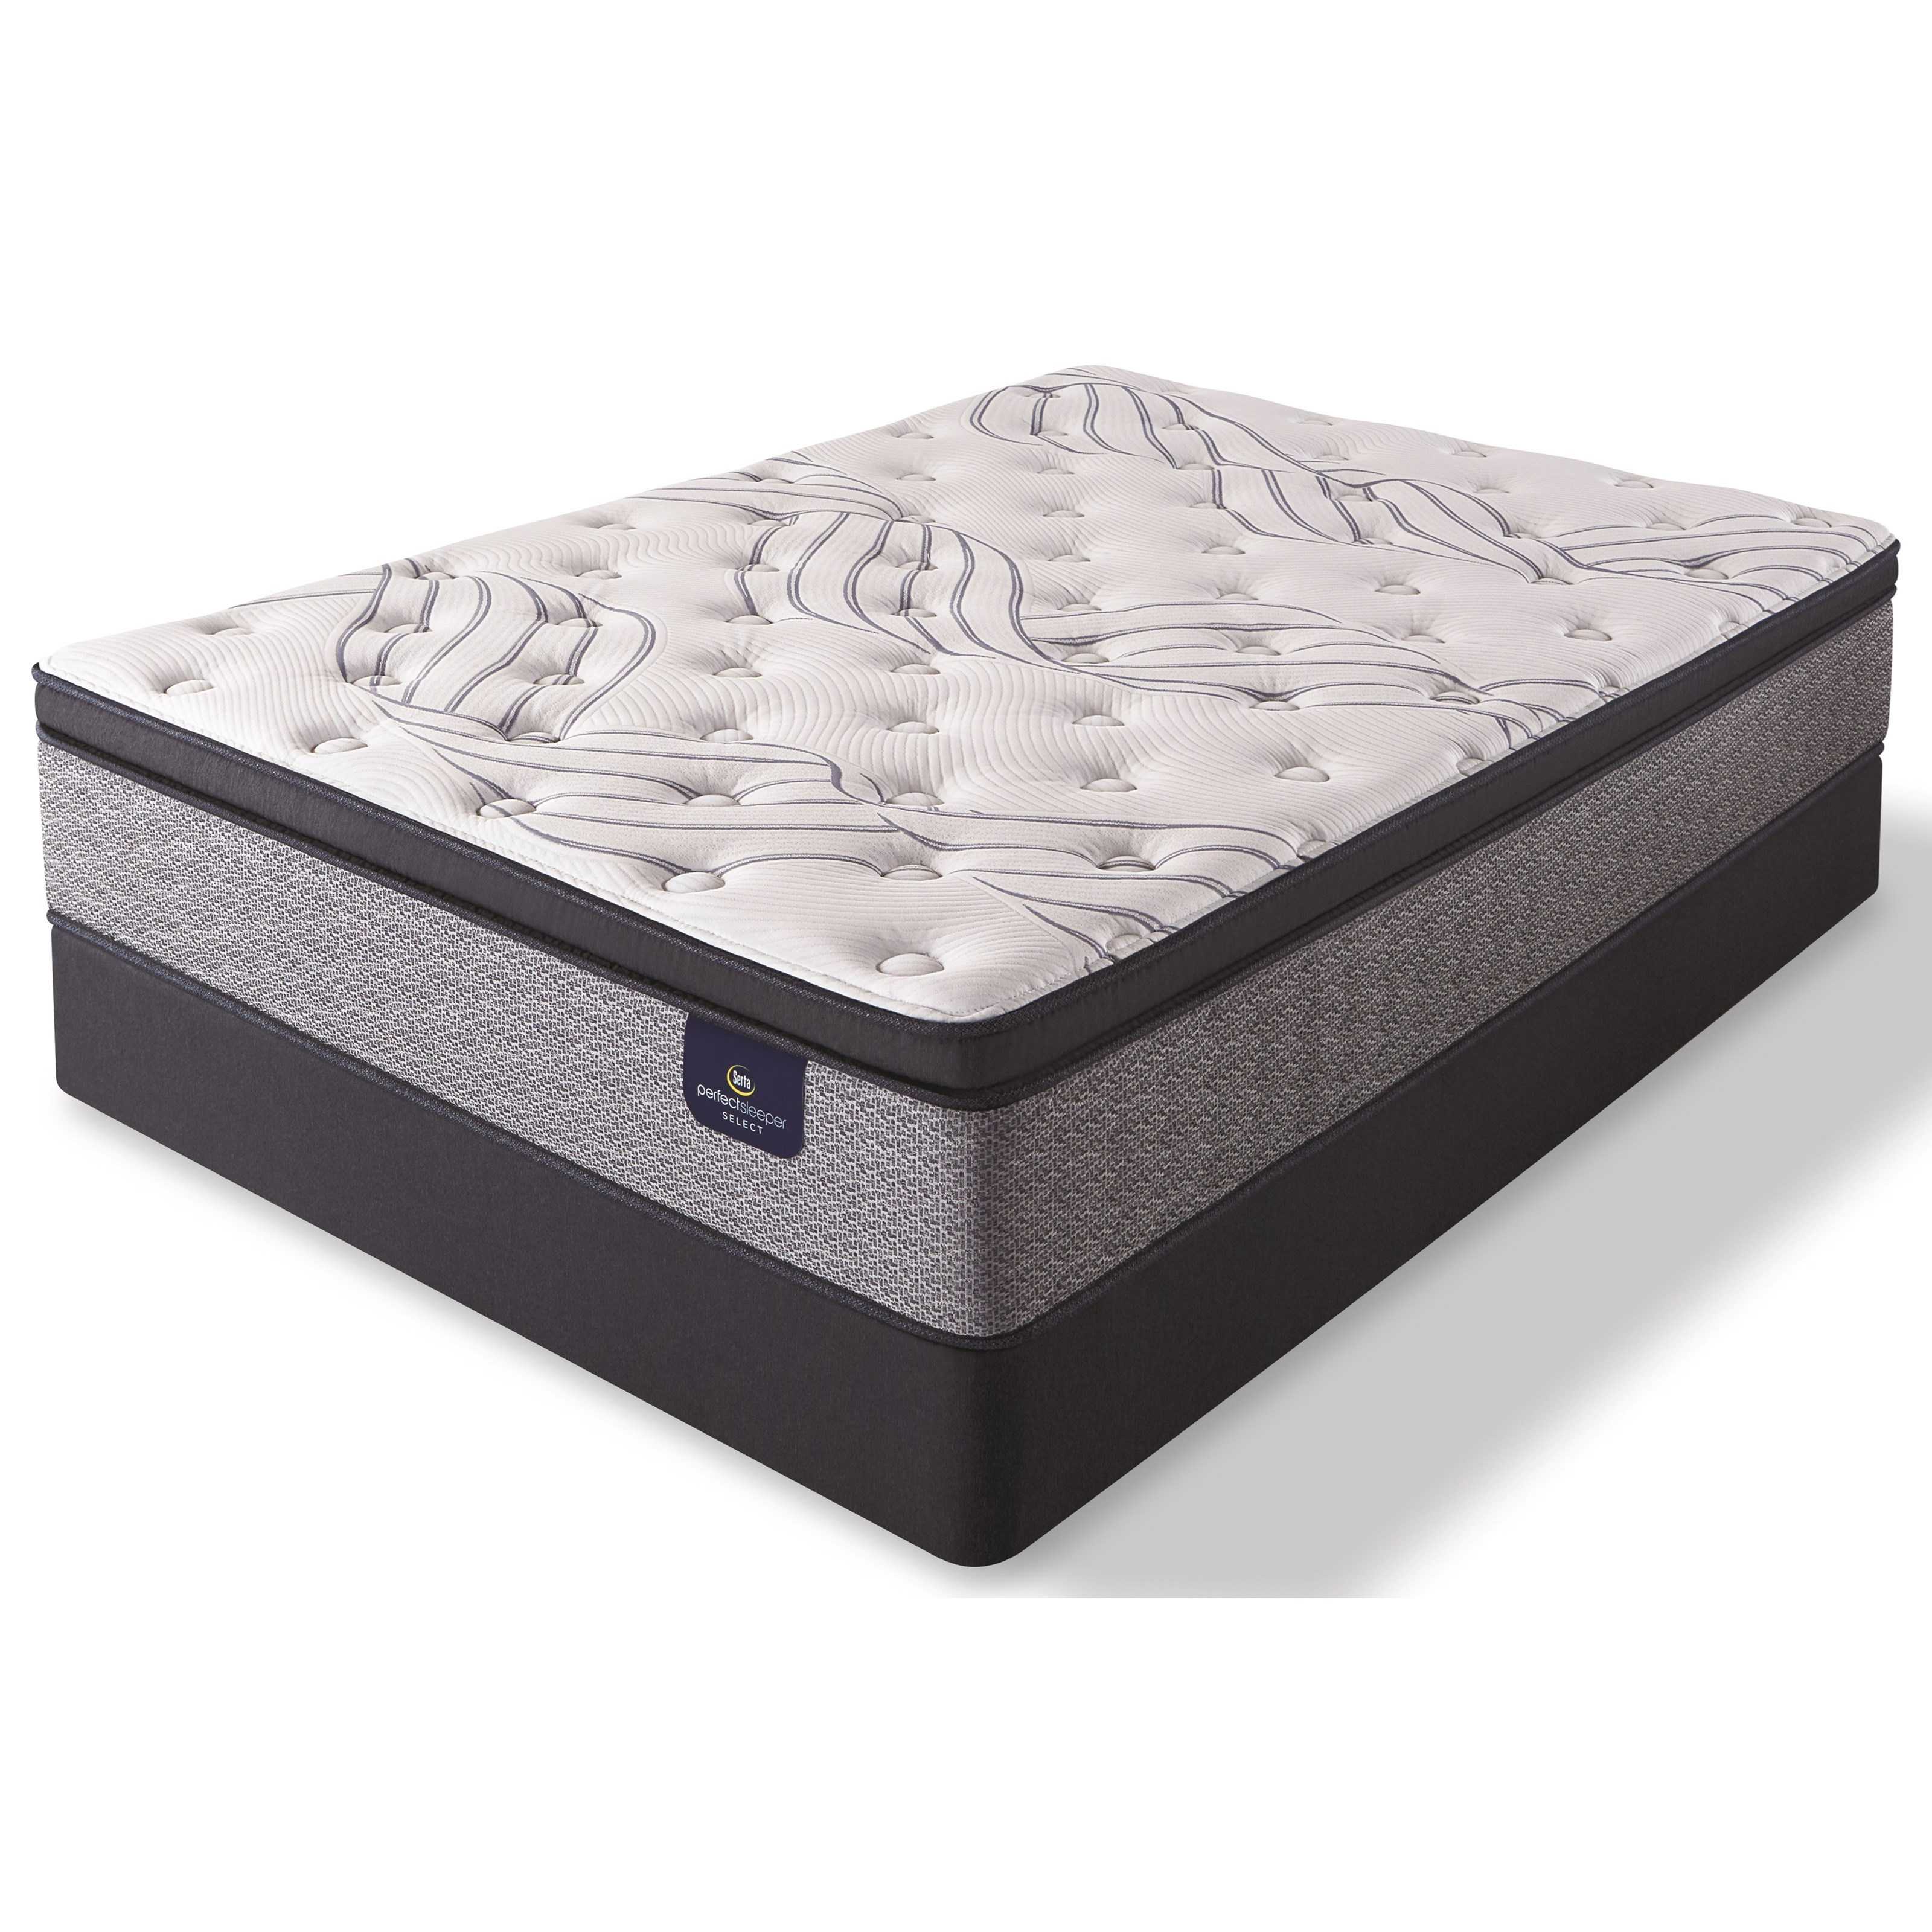 Mayville PPT Full Pocketed Coil Mattress Set by Serta at Walker's Mattress